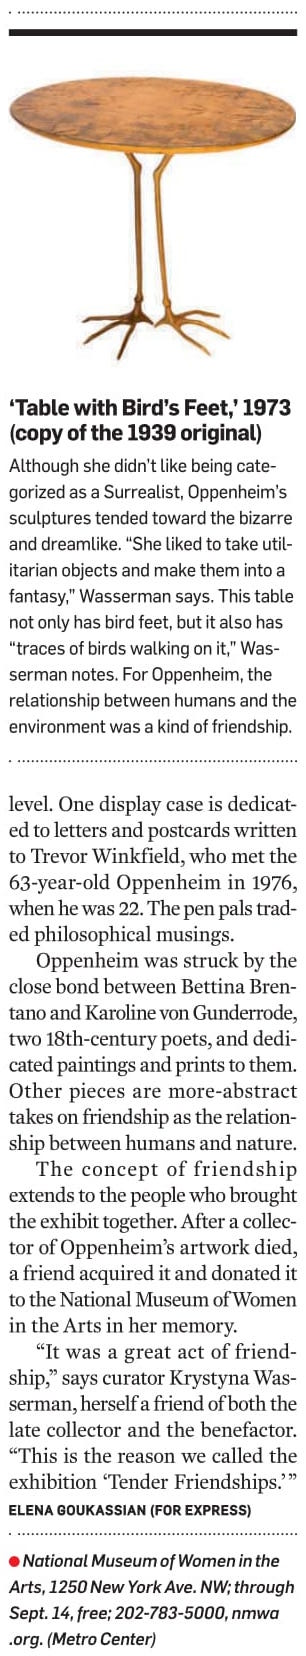 https://www.washingtonpost.com/express/wp/2014/05/08/meret-oppenheim-tender-friendships-national-museum-women-arts/